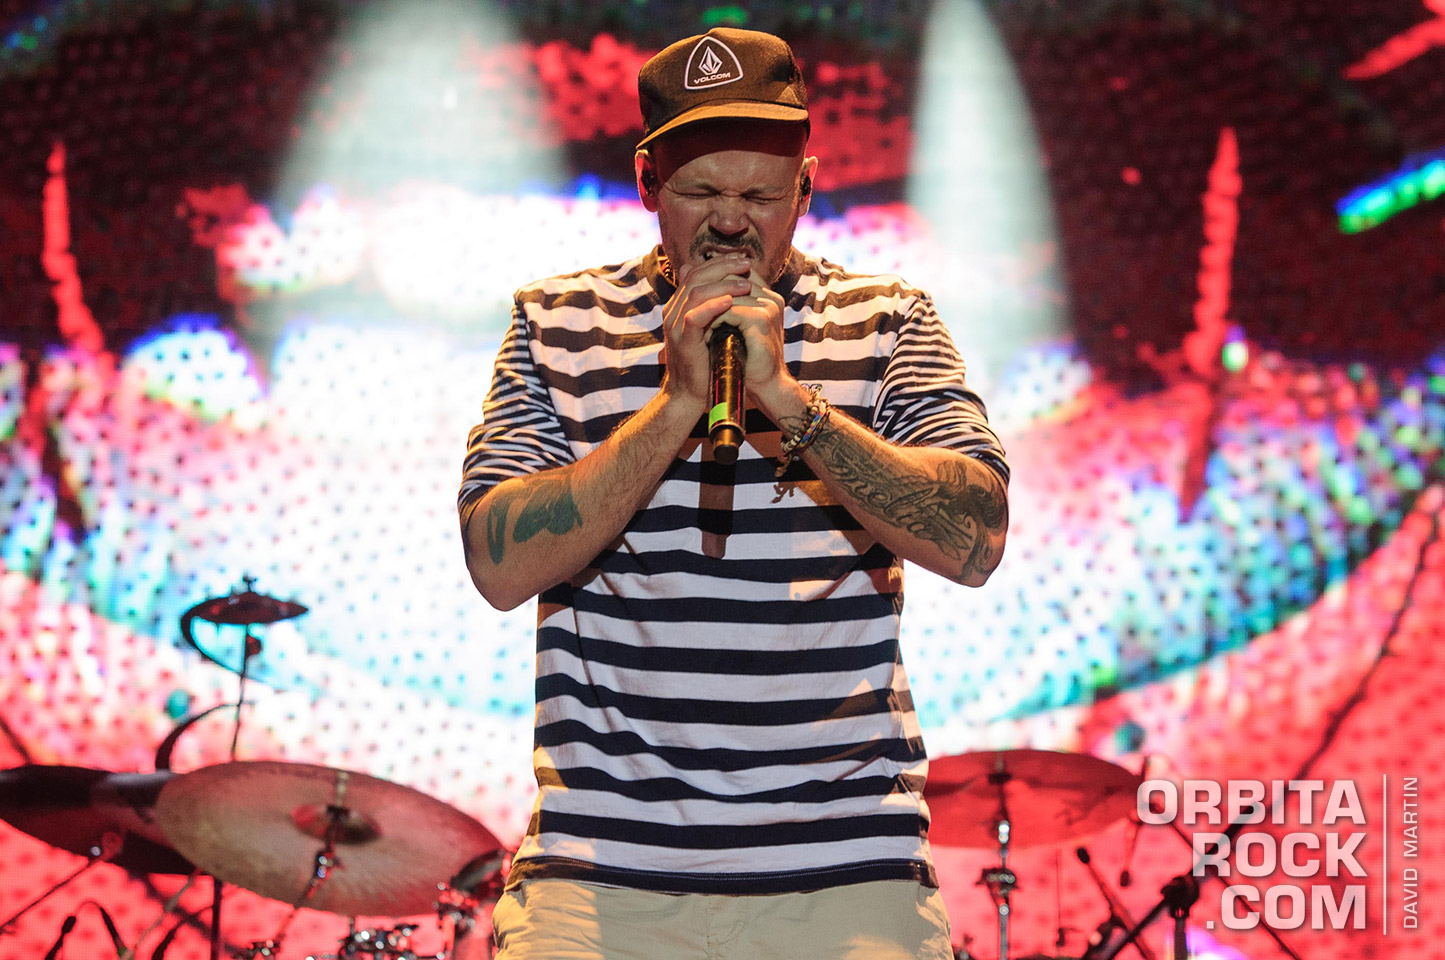 Residente en Cosquin Rock Colombia